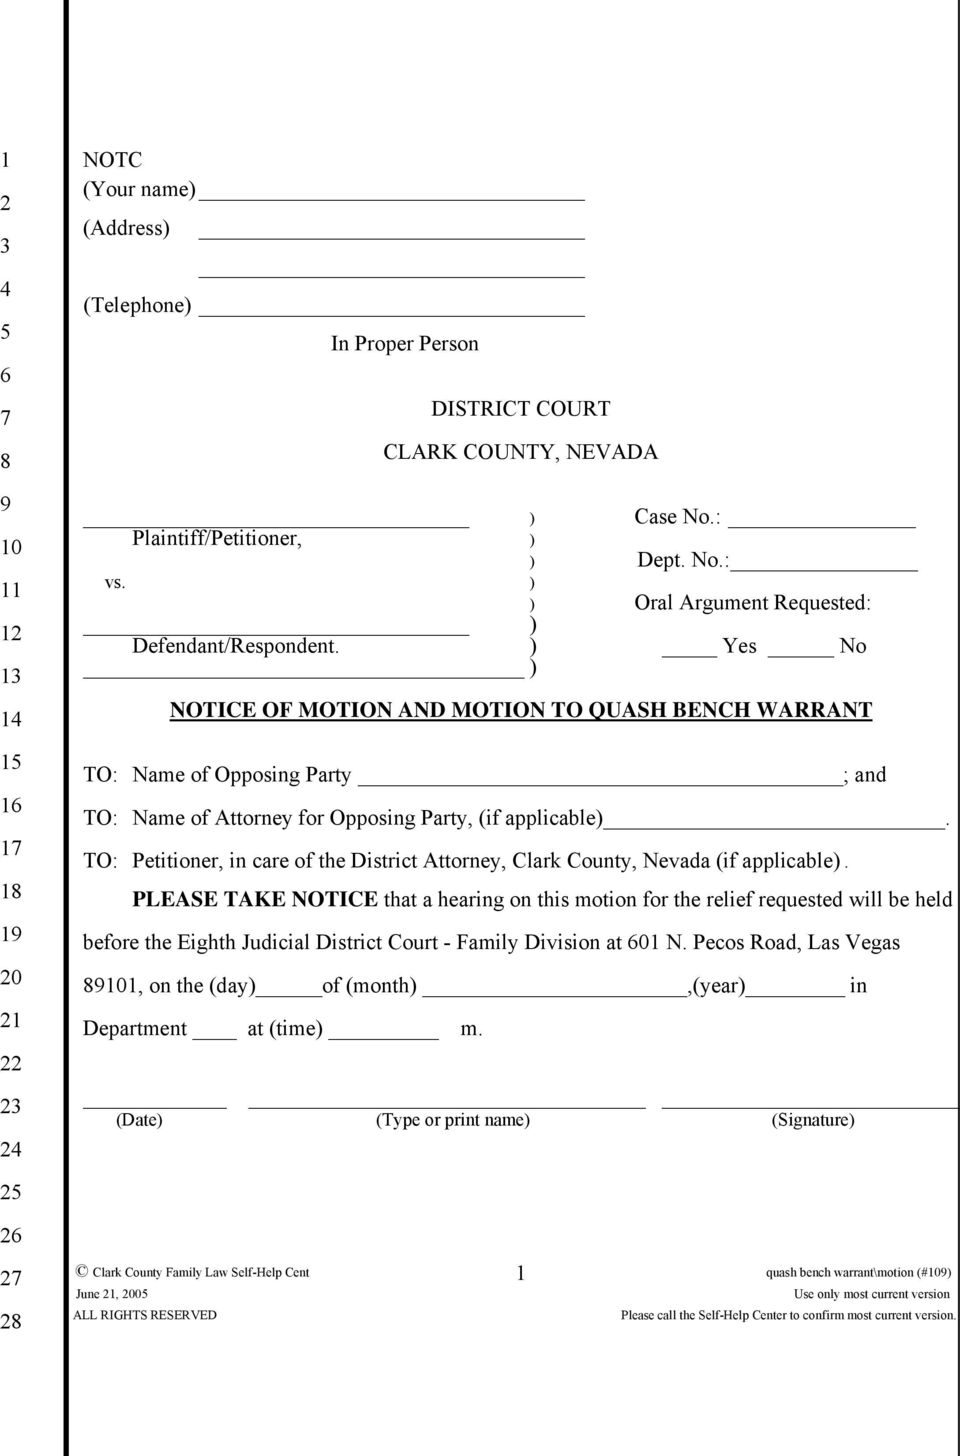 MOTION TO QUASH BENCH WARRANT - PDF